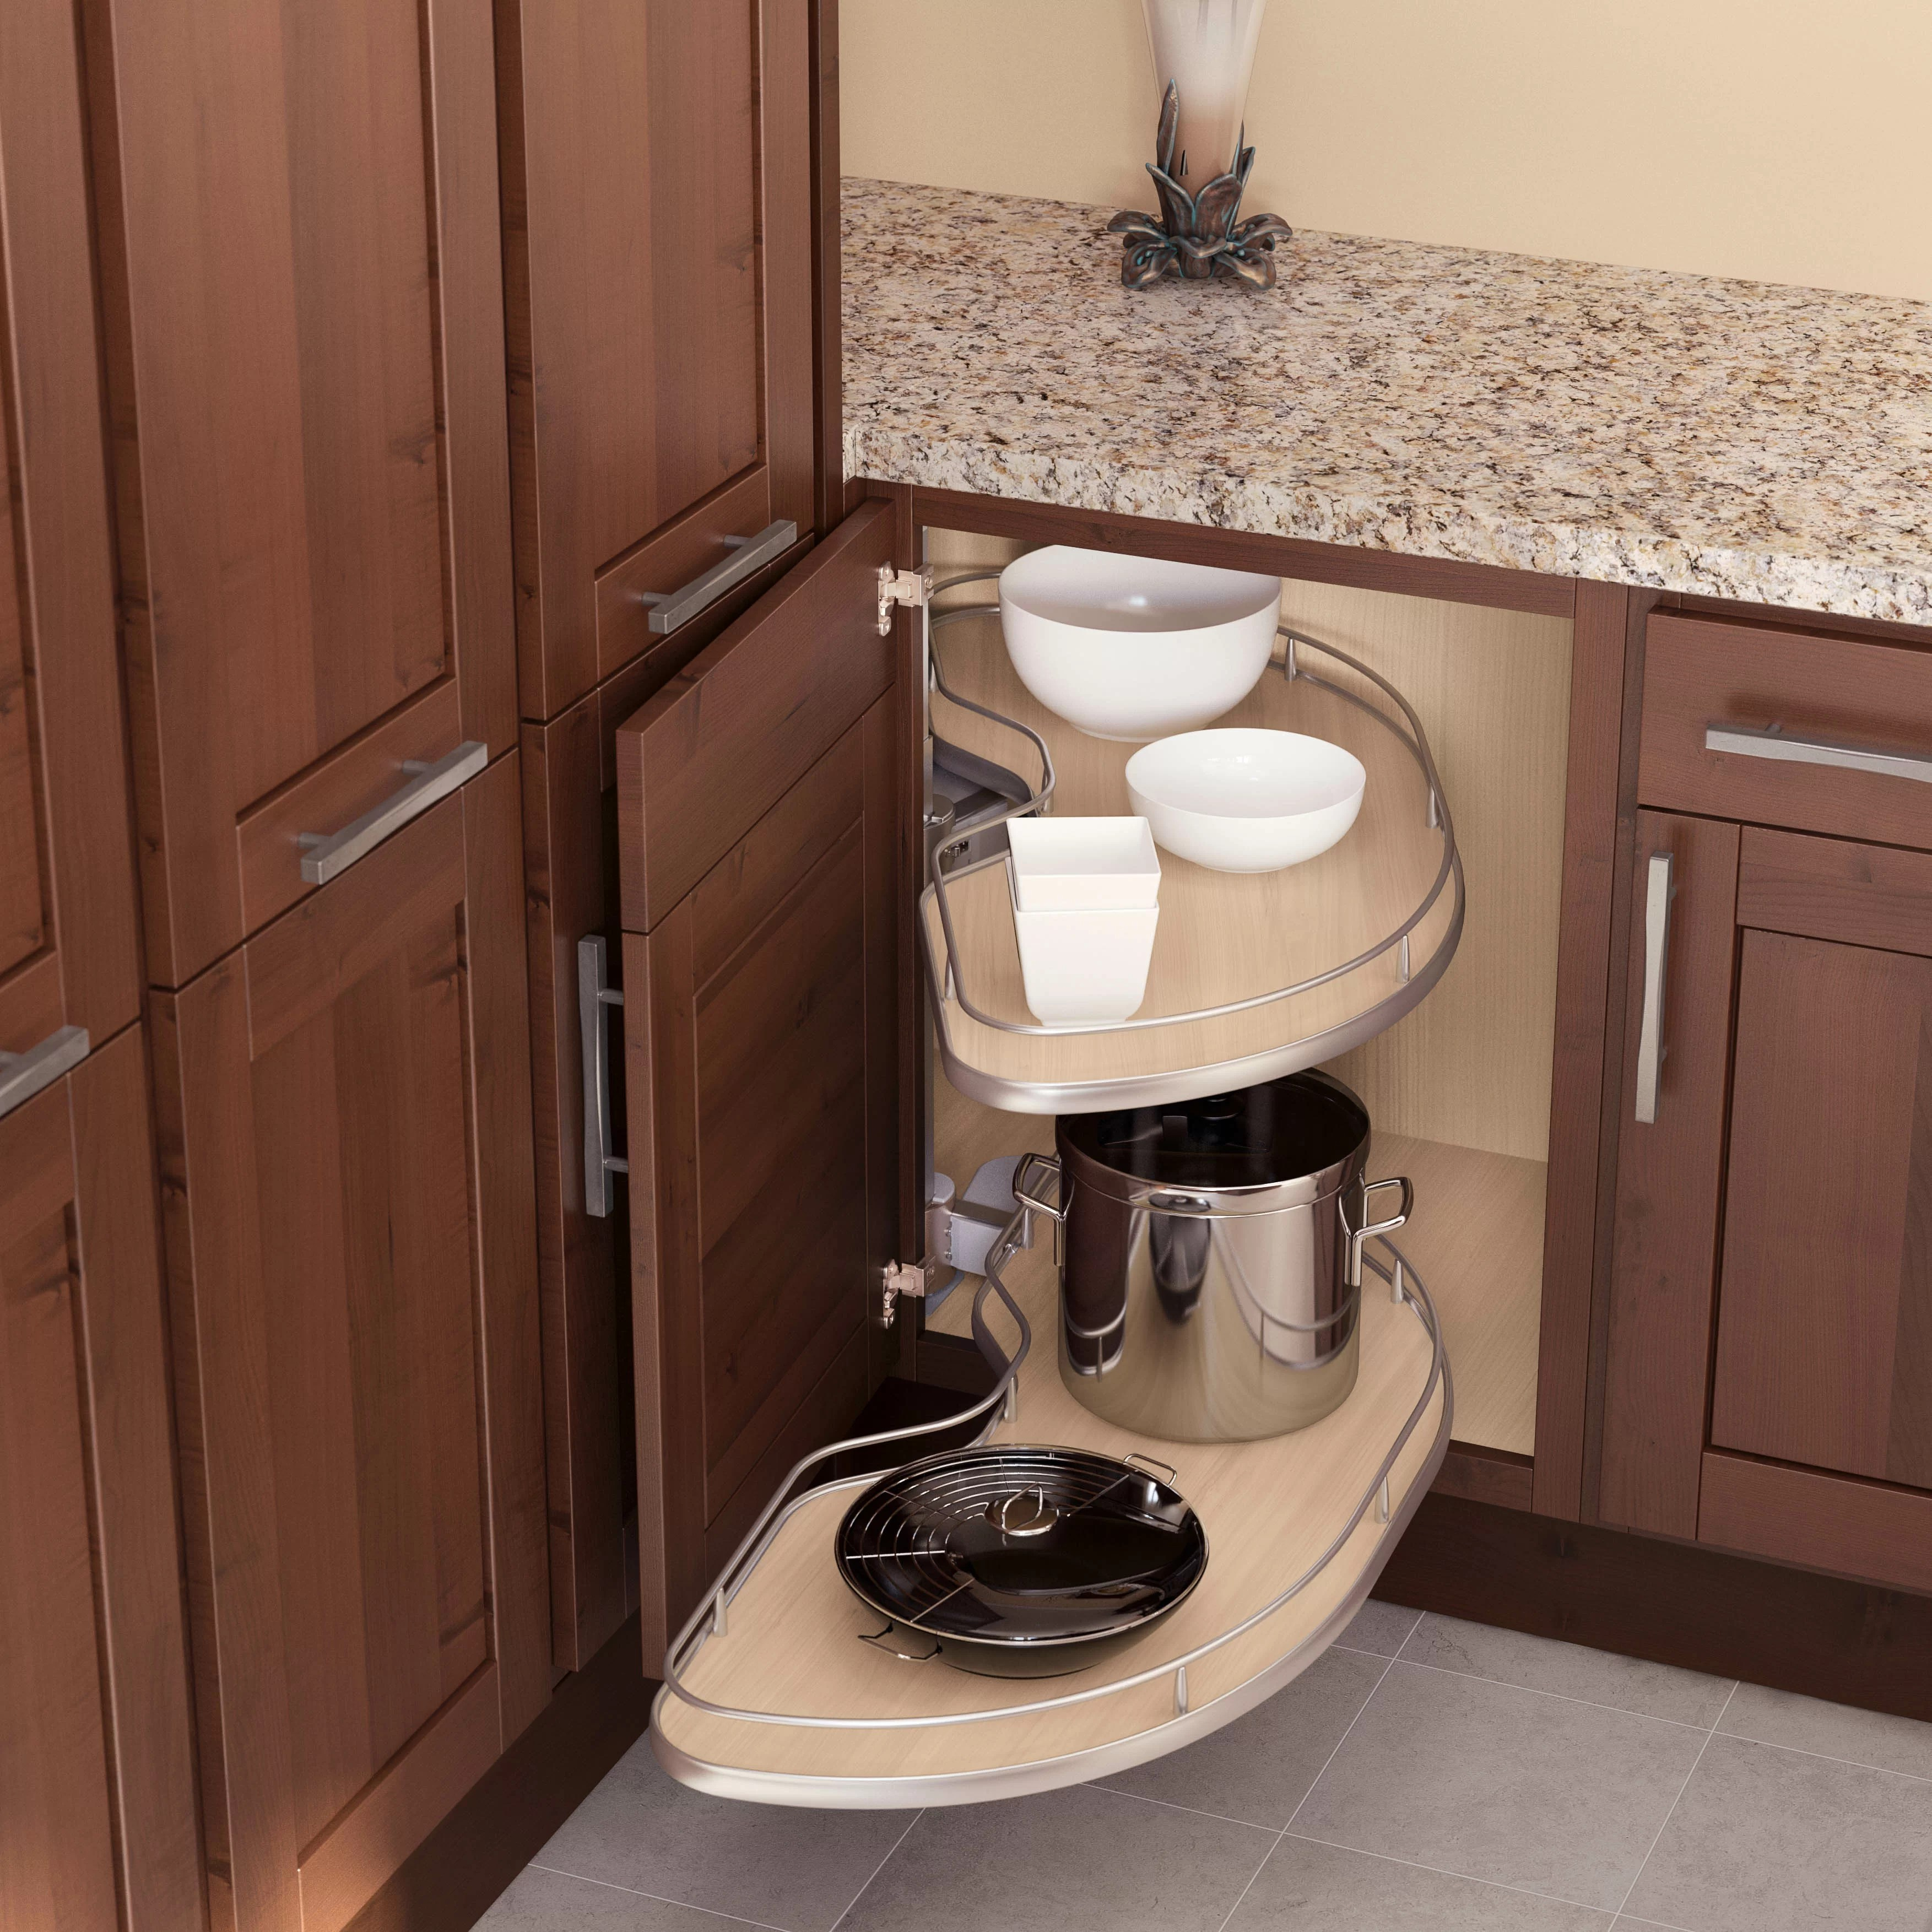 Blind Corner Cornerstone Maxx Kit 1 L For Cabinet 800mm Maple Silver In 1000mm Tray For 39 Cabinets Left Handed In Scalea Maple Silver